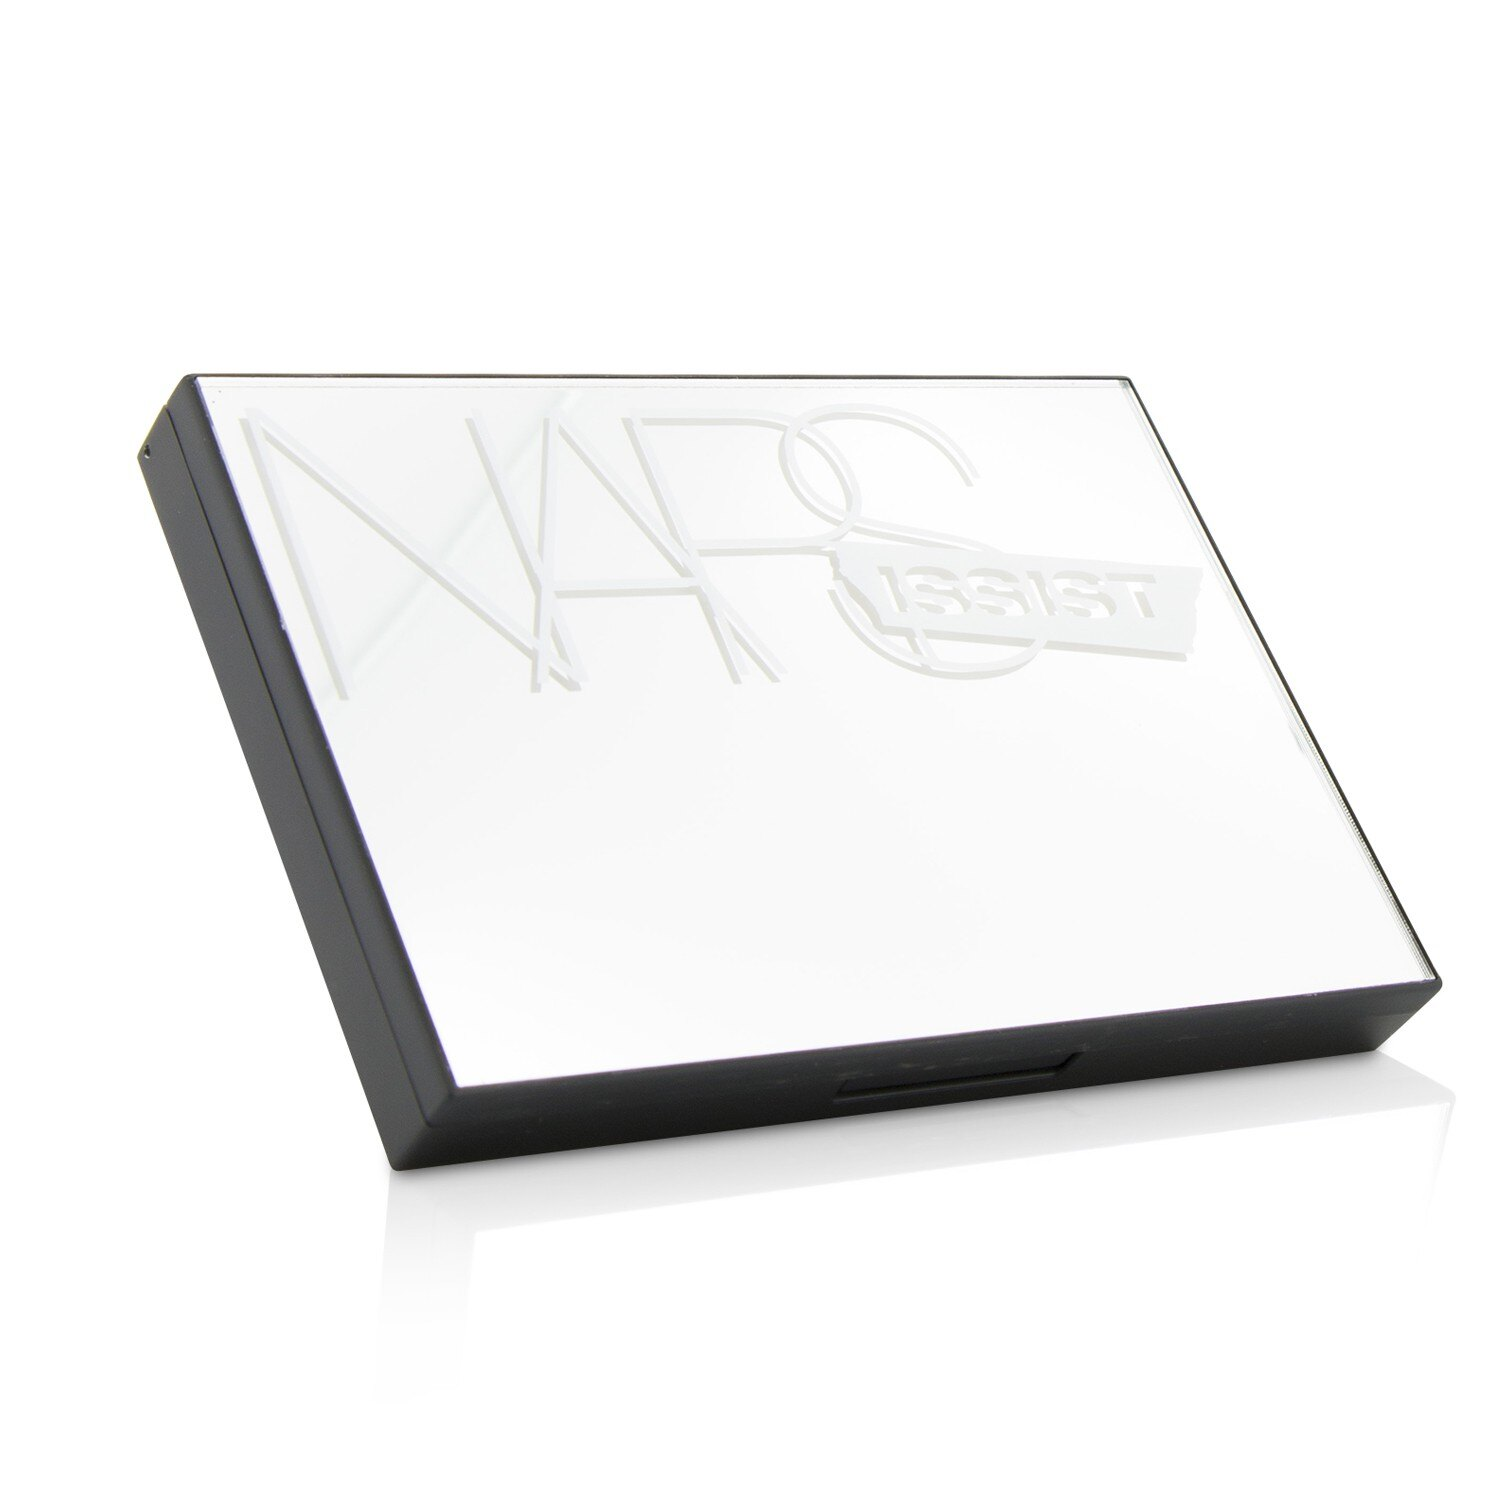 NARS - NARSissist極度自戀12色奢華眼彩盤 (12x 眼影)NARSissist L'Amour, Toujours L'Amour Eyeshadow Palette (12x Ey